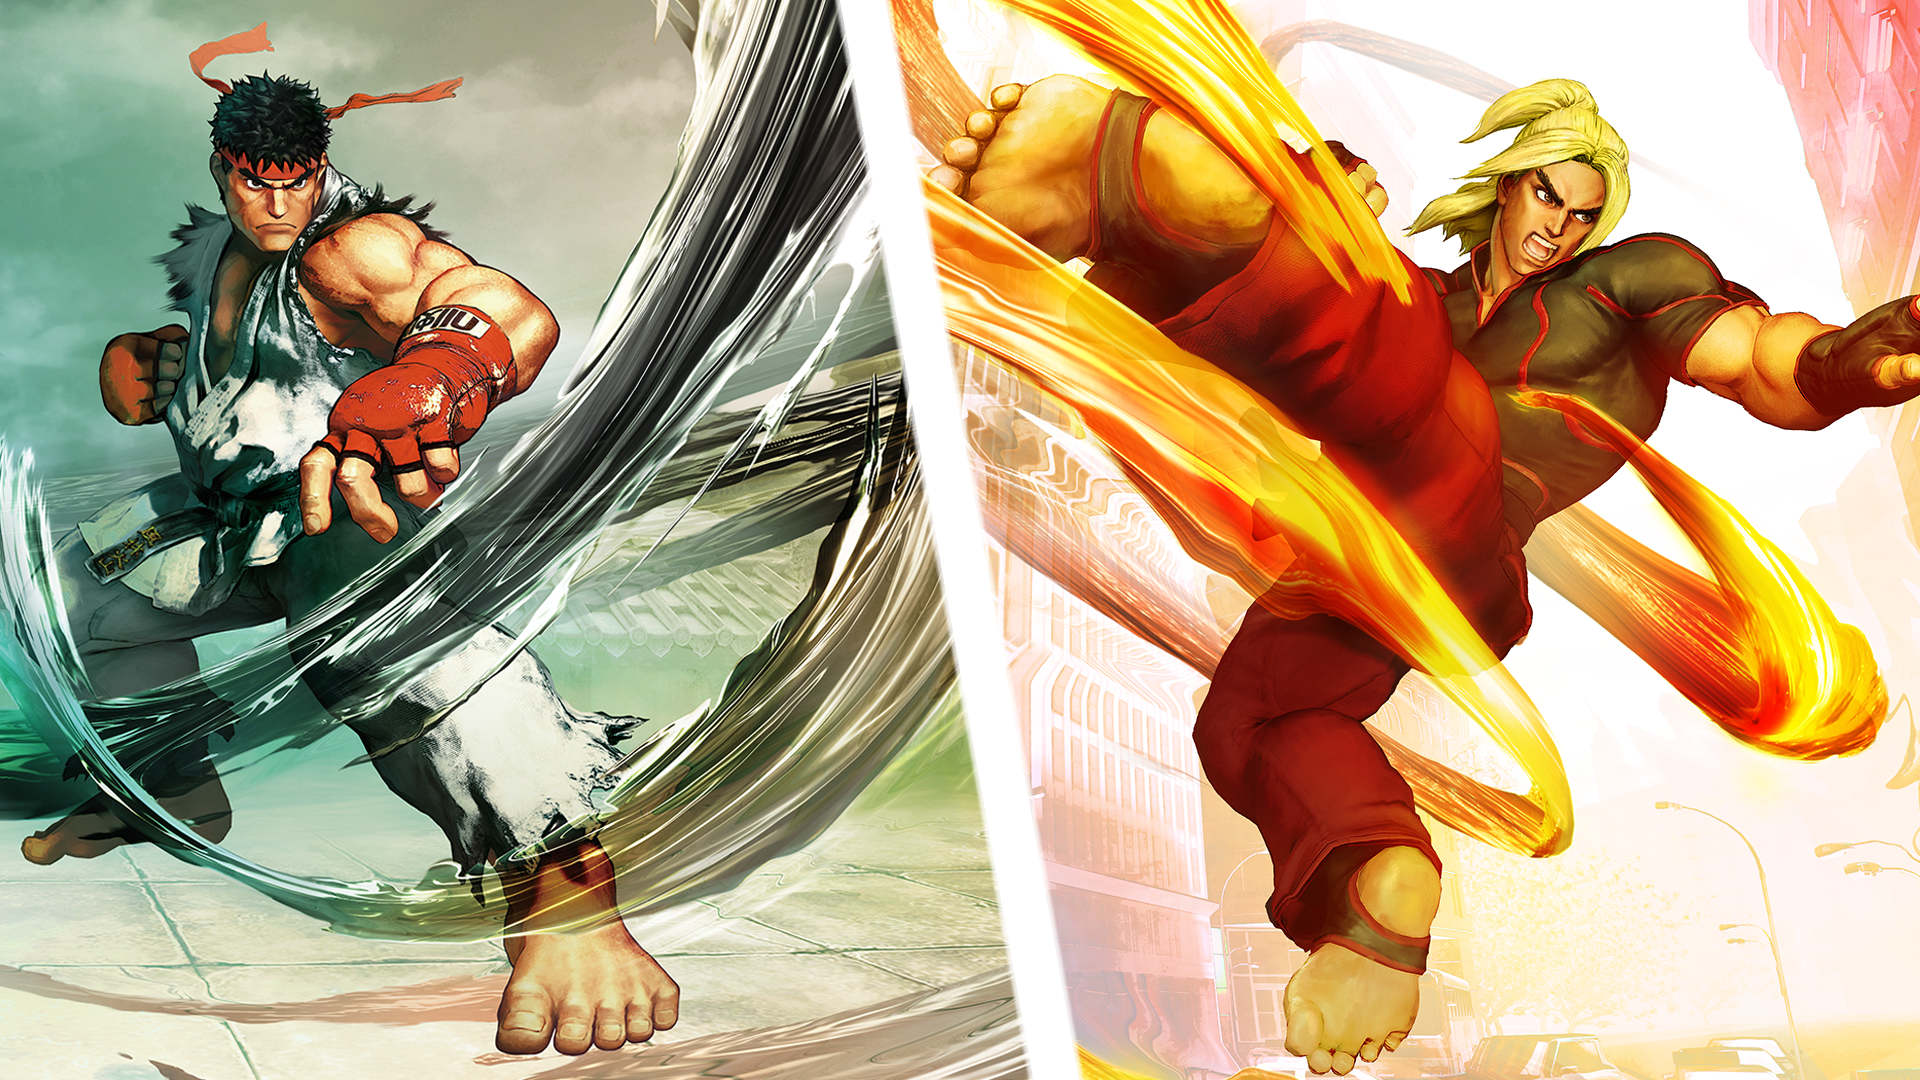 Street Fighter V Wallpaper 018 Ryu And Ken Wallpapers Ethereal